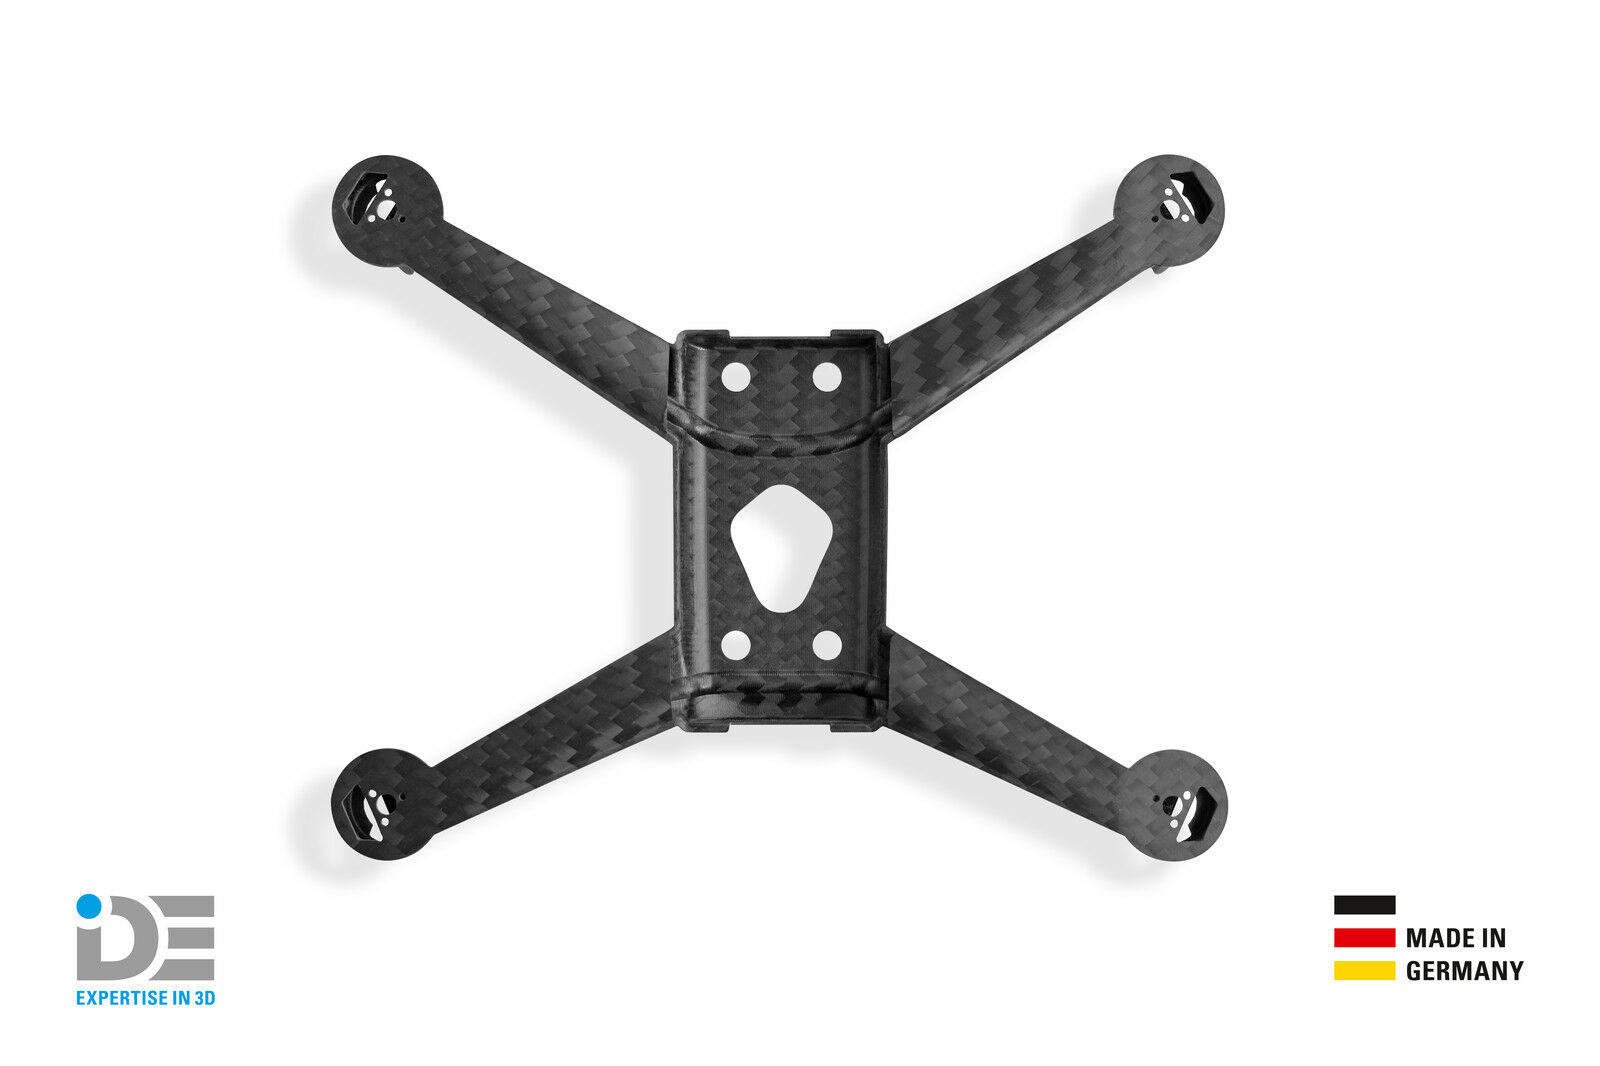 IDE carbospider F. Parrot Bebop Drone 2 FULL CARBON Central Cross QUADRO FRAME